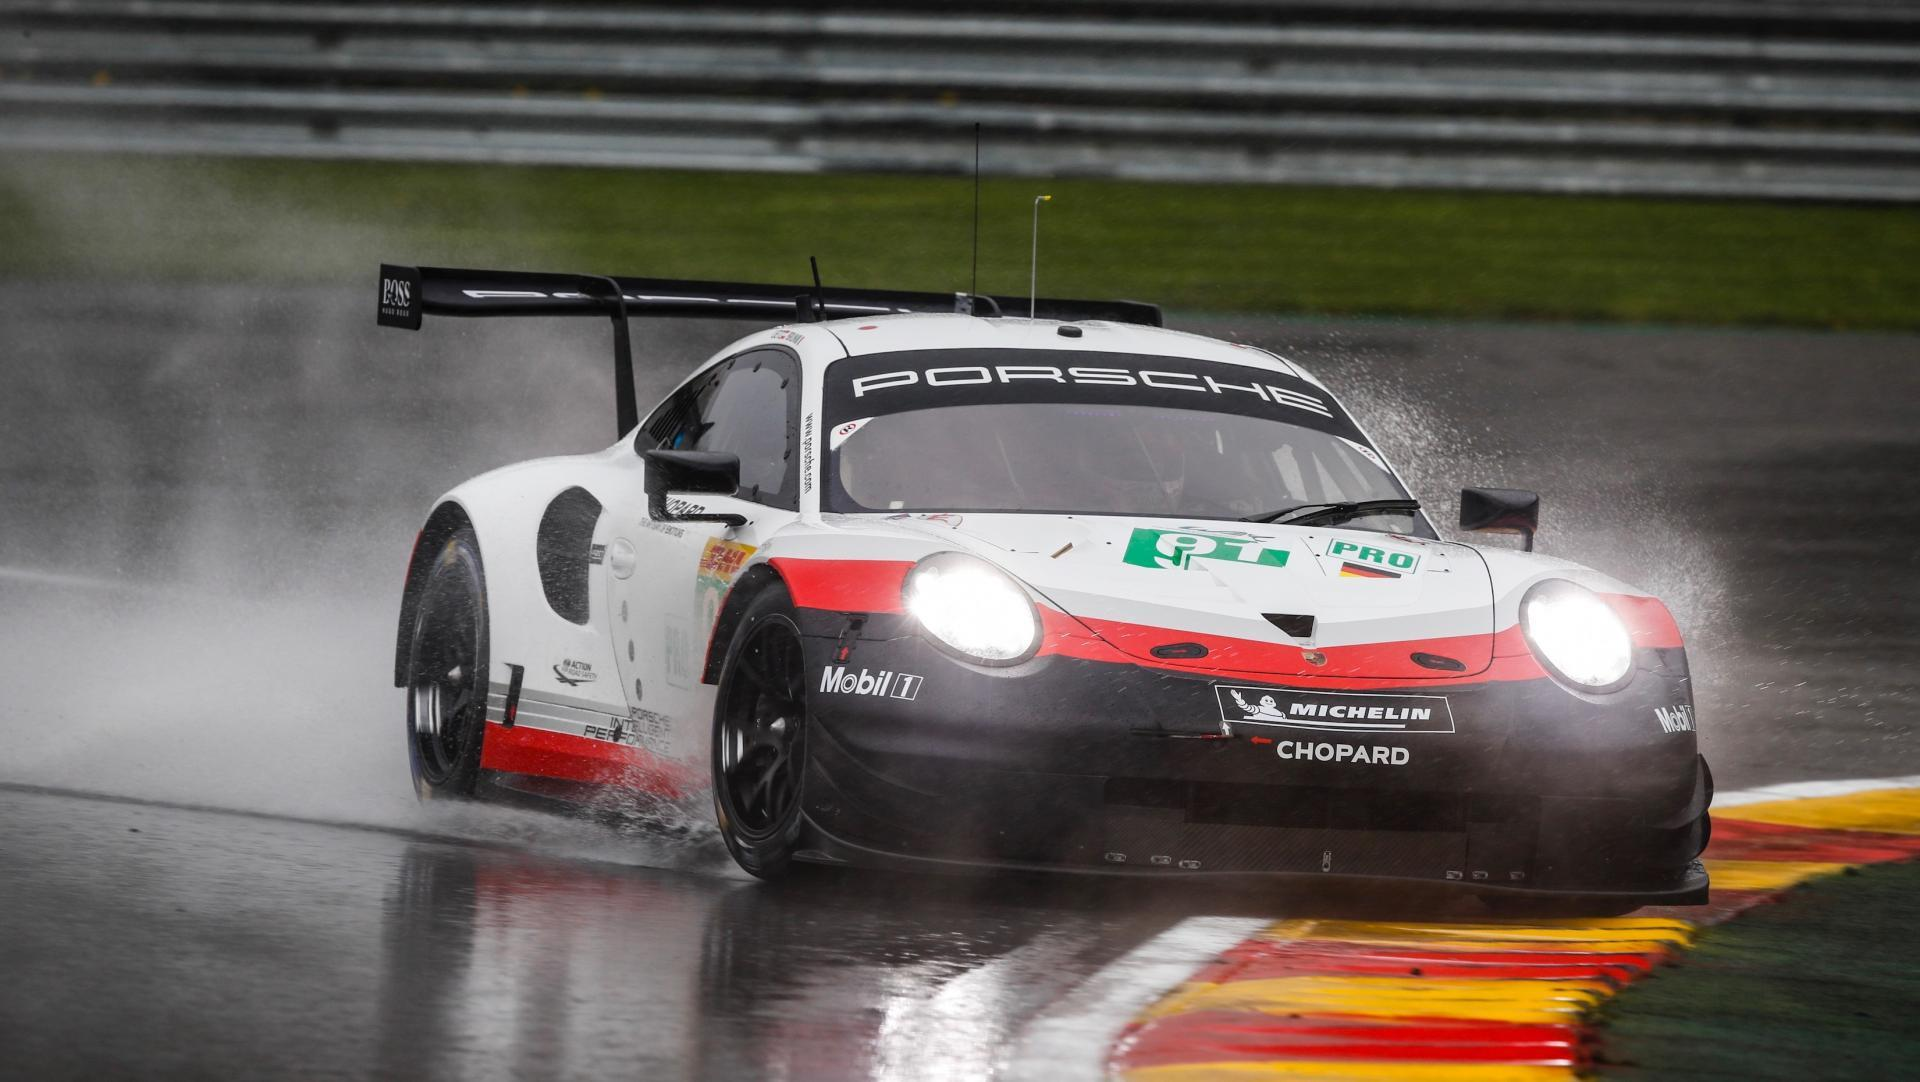 High 911 rsr qualifying fia wec spa francorchamps 2019 porsche ag